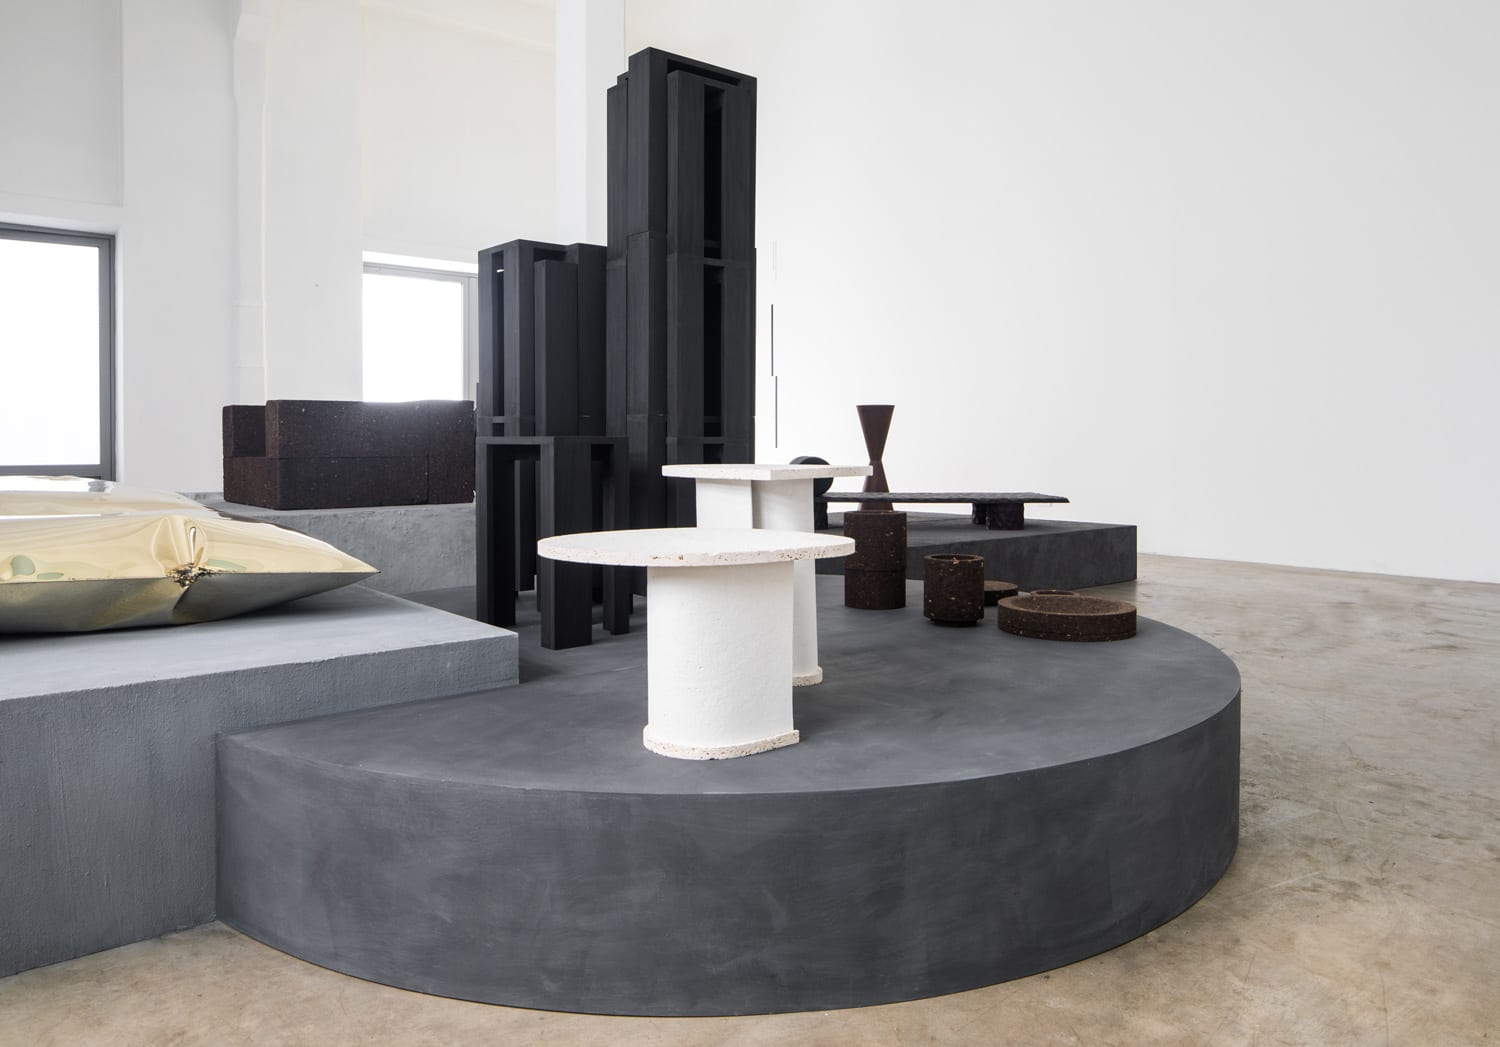 BRUT Collective of Six Emerging Belgian Designers Makes its début in Milan | Yellowtrace